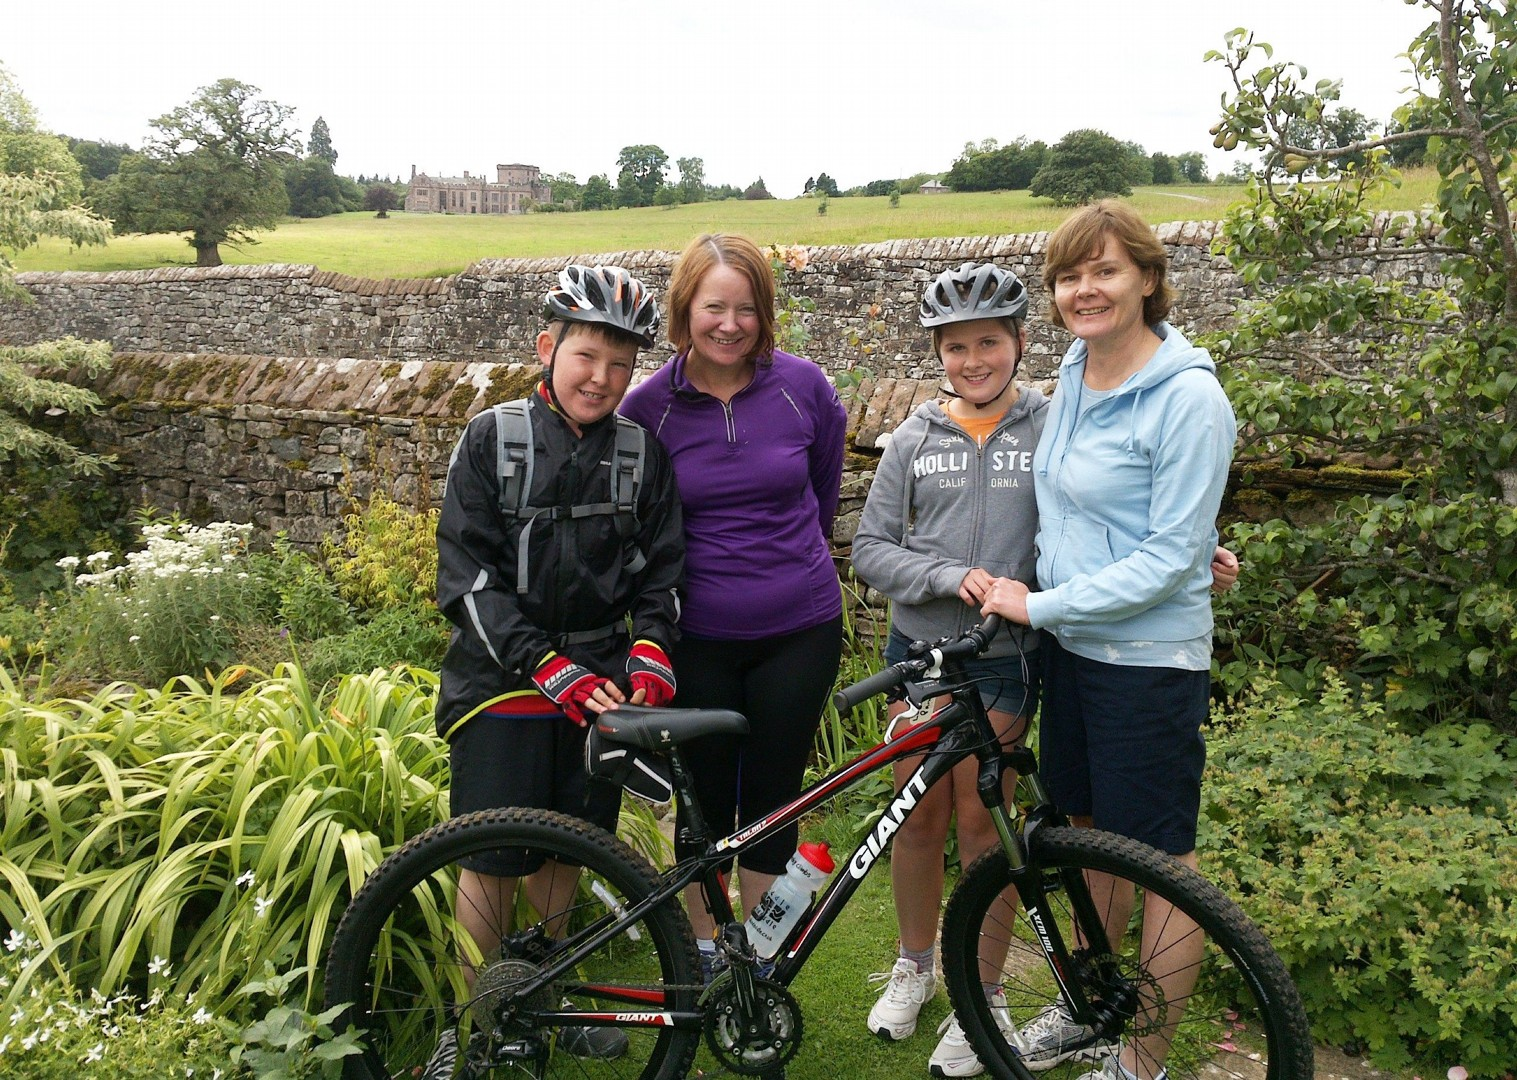 family-guided-bike-skills-uk-lake-district-cycling-holiday.jpg - UK - Lake District - Bike Skills - Family Cycling